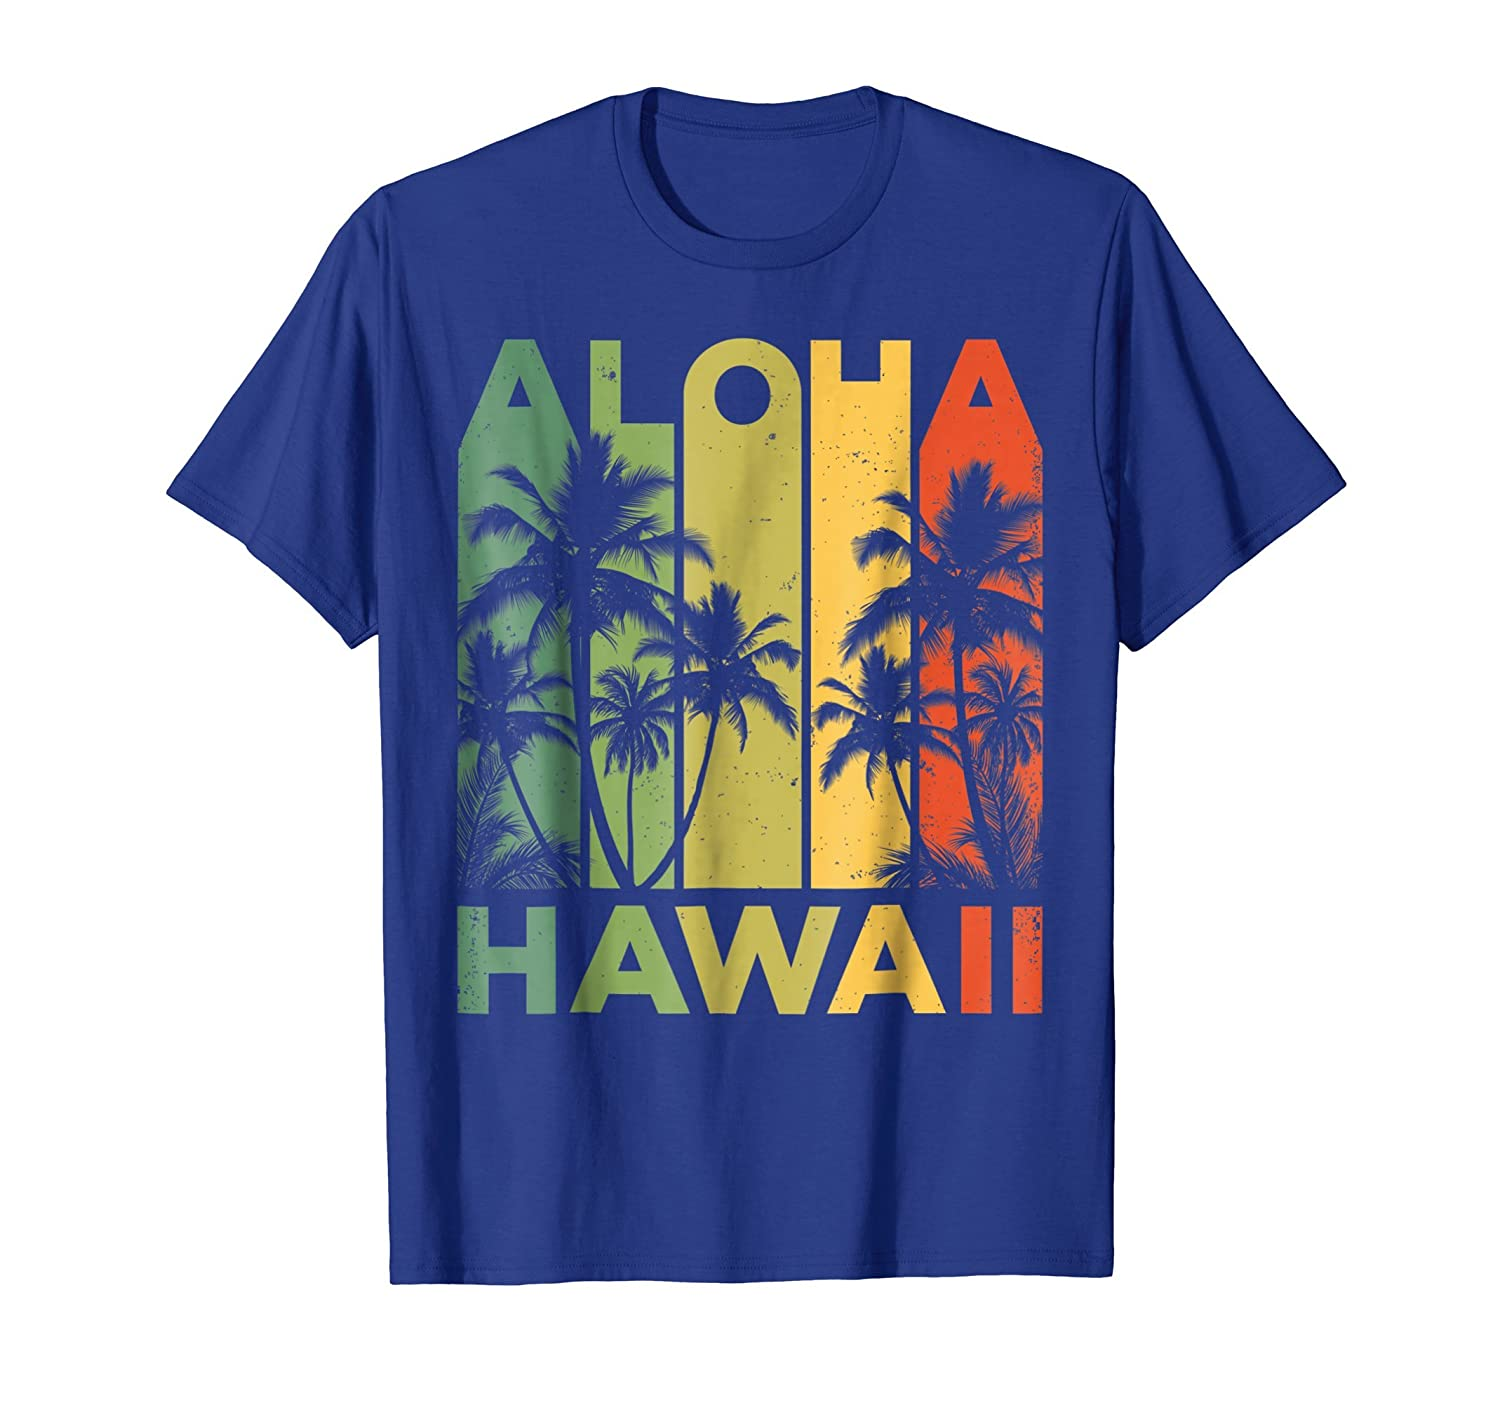 Aloha Hawaii Hawaiian Island T shirt Vintage 1980s Throwback-fa